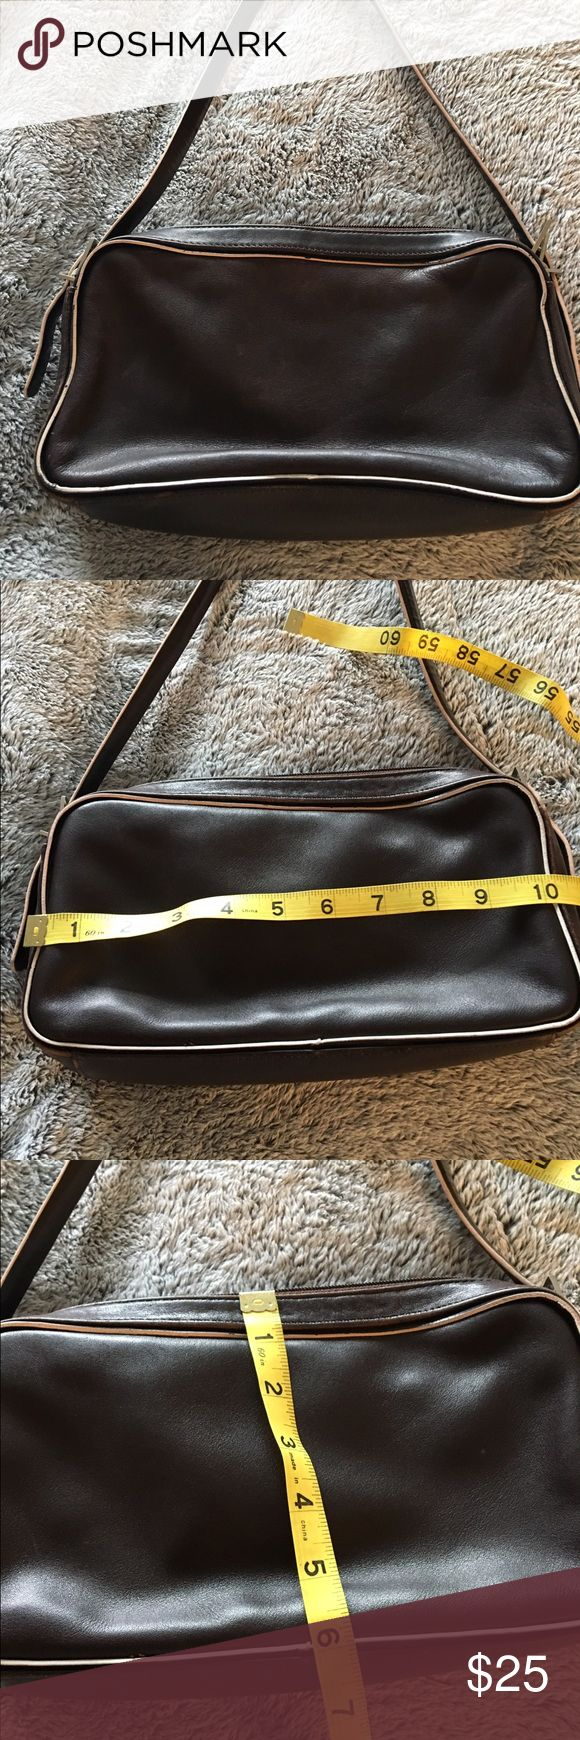 Andrew Marc brown leather purse Super soft leather, amazing Andrew Marc purse with white piping. Great condition. Andrew Marc Bags Mini Bags